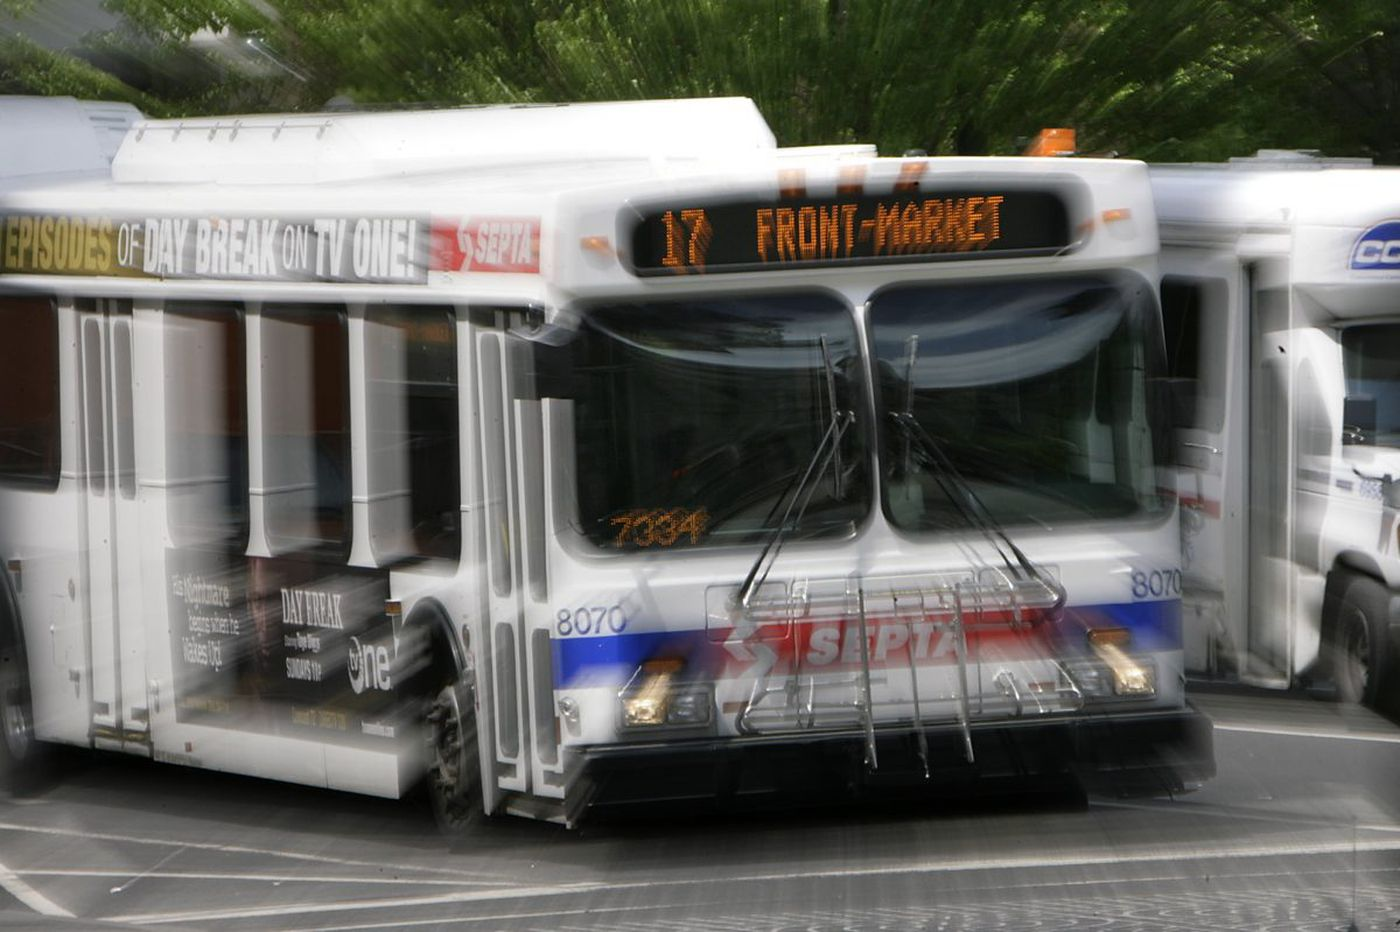 ACLU challenges SEPTA's ban on political ads